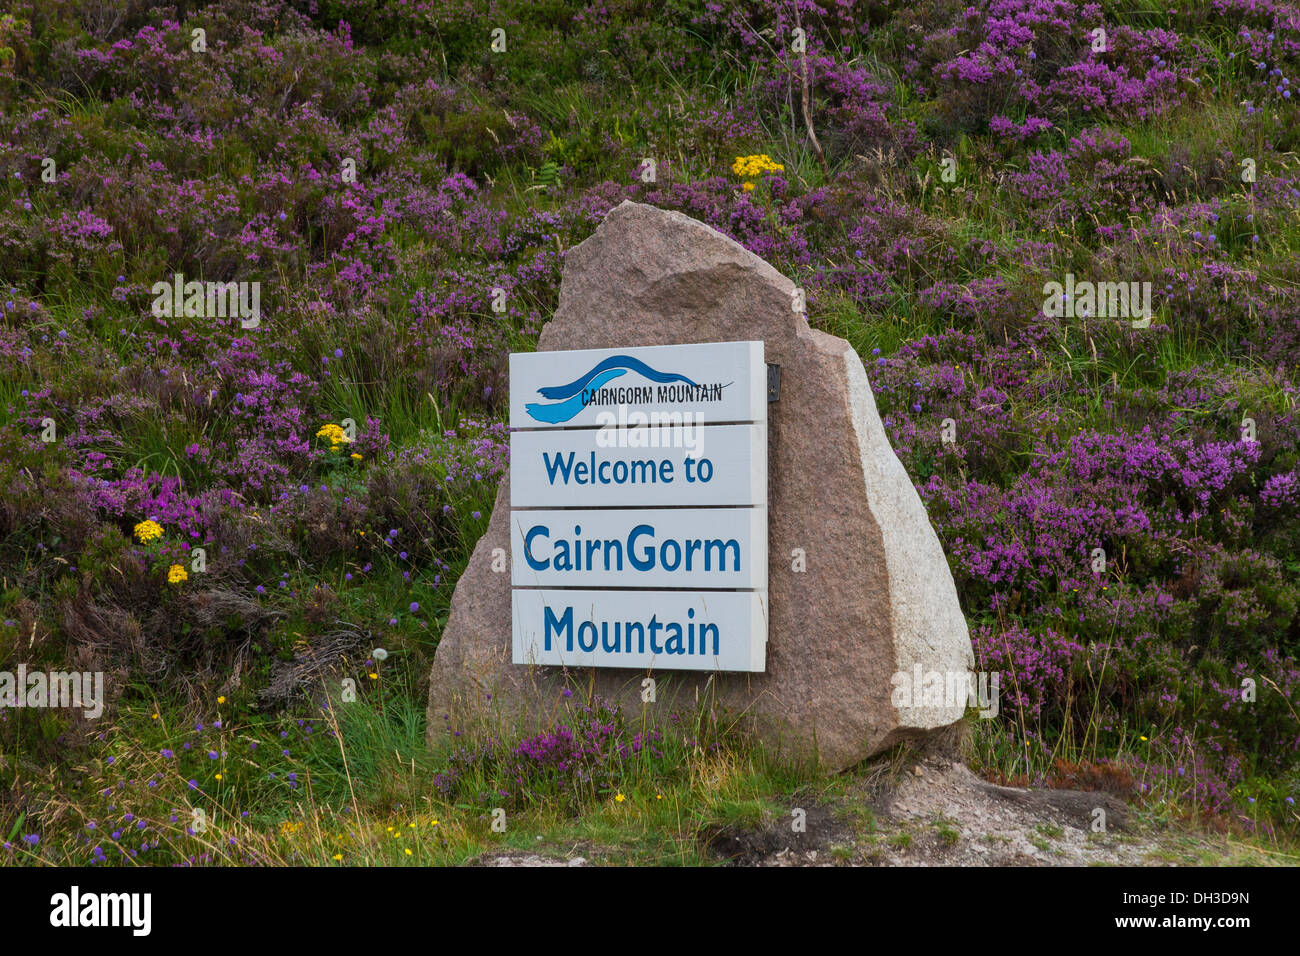 Welcome to Cairngorm Mountain Sign on Granite Boulder in the Heather - Stock Image